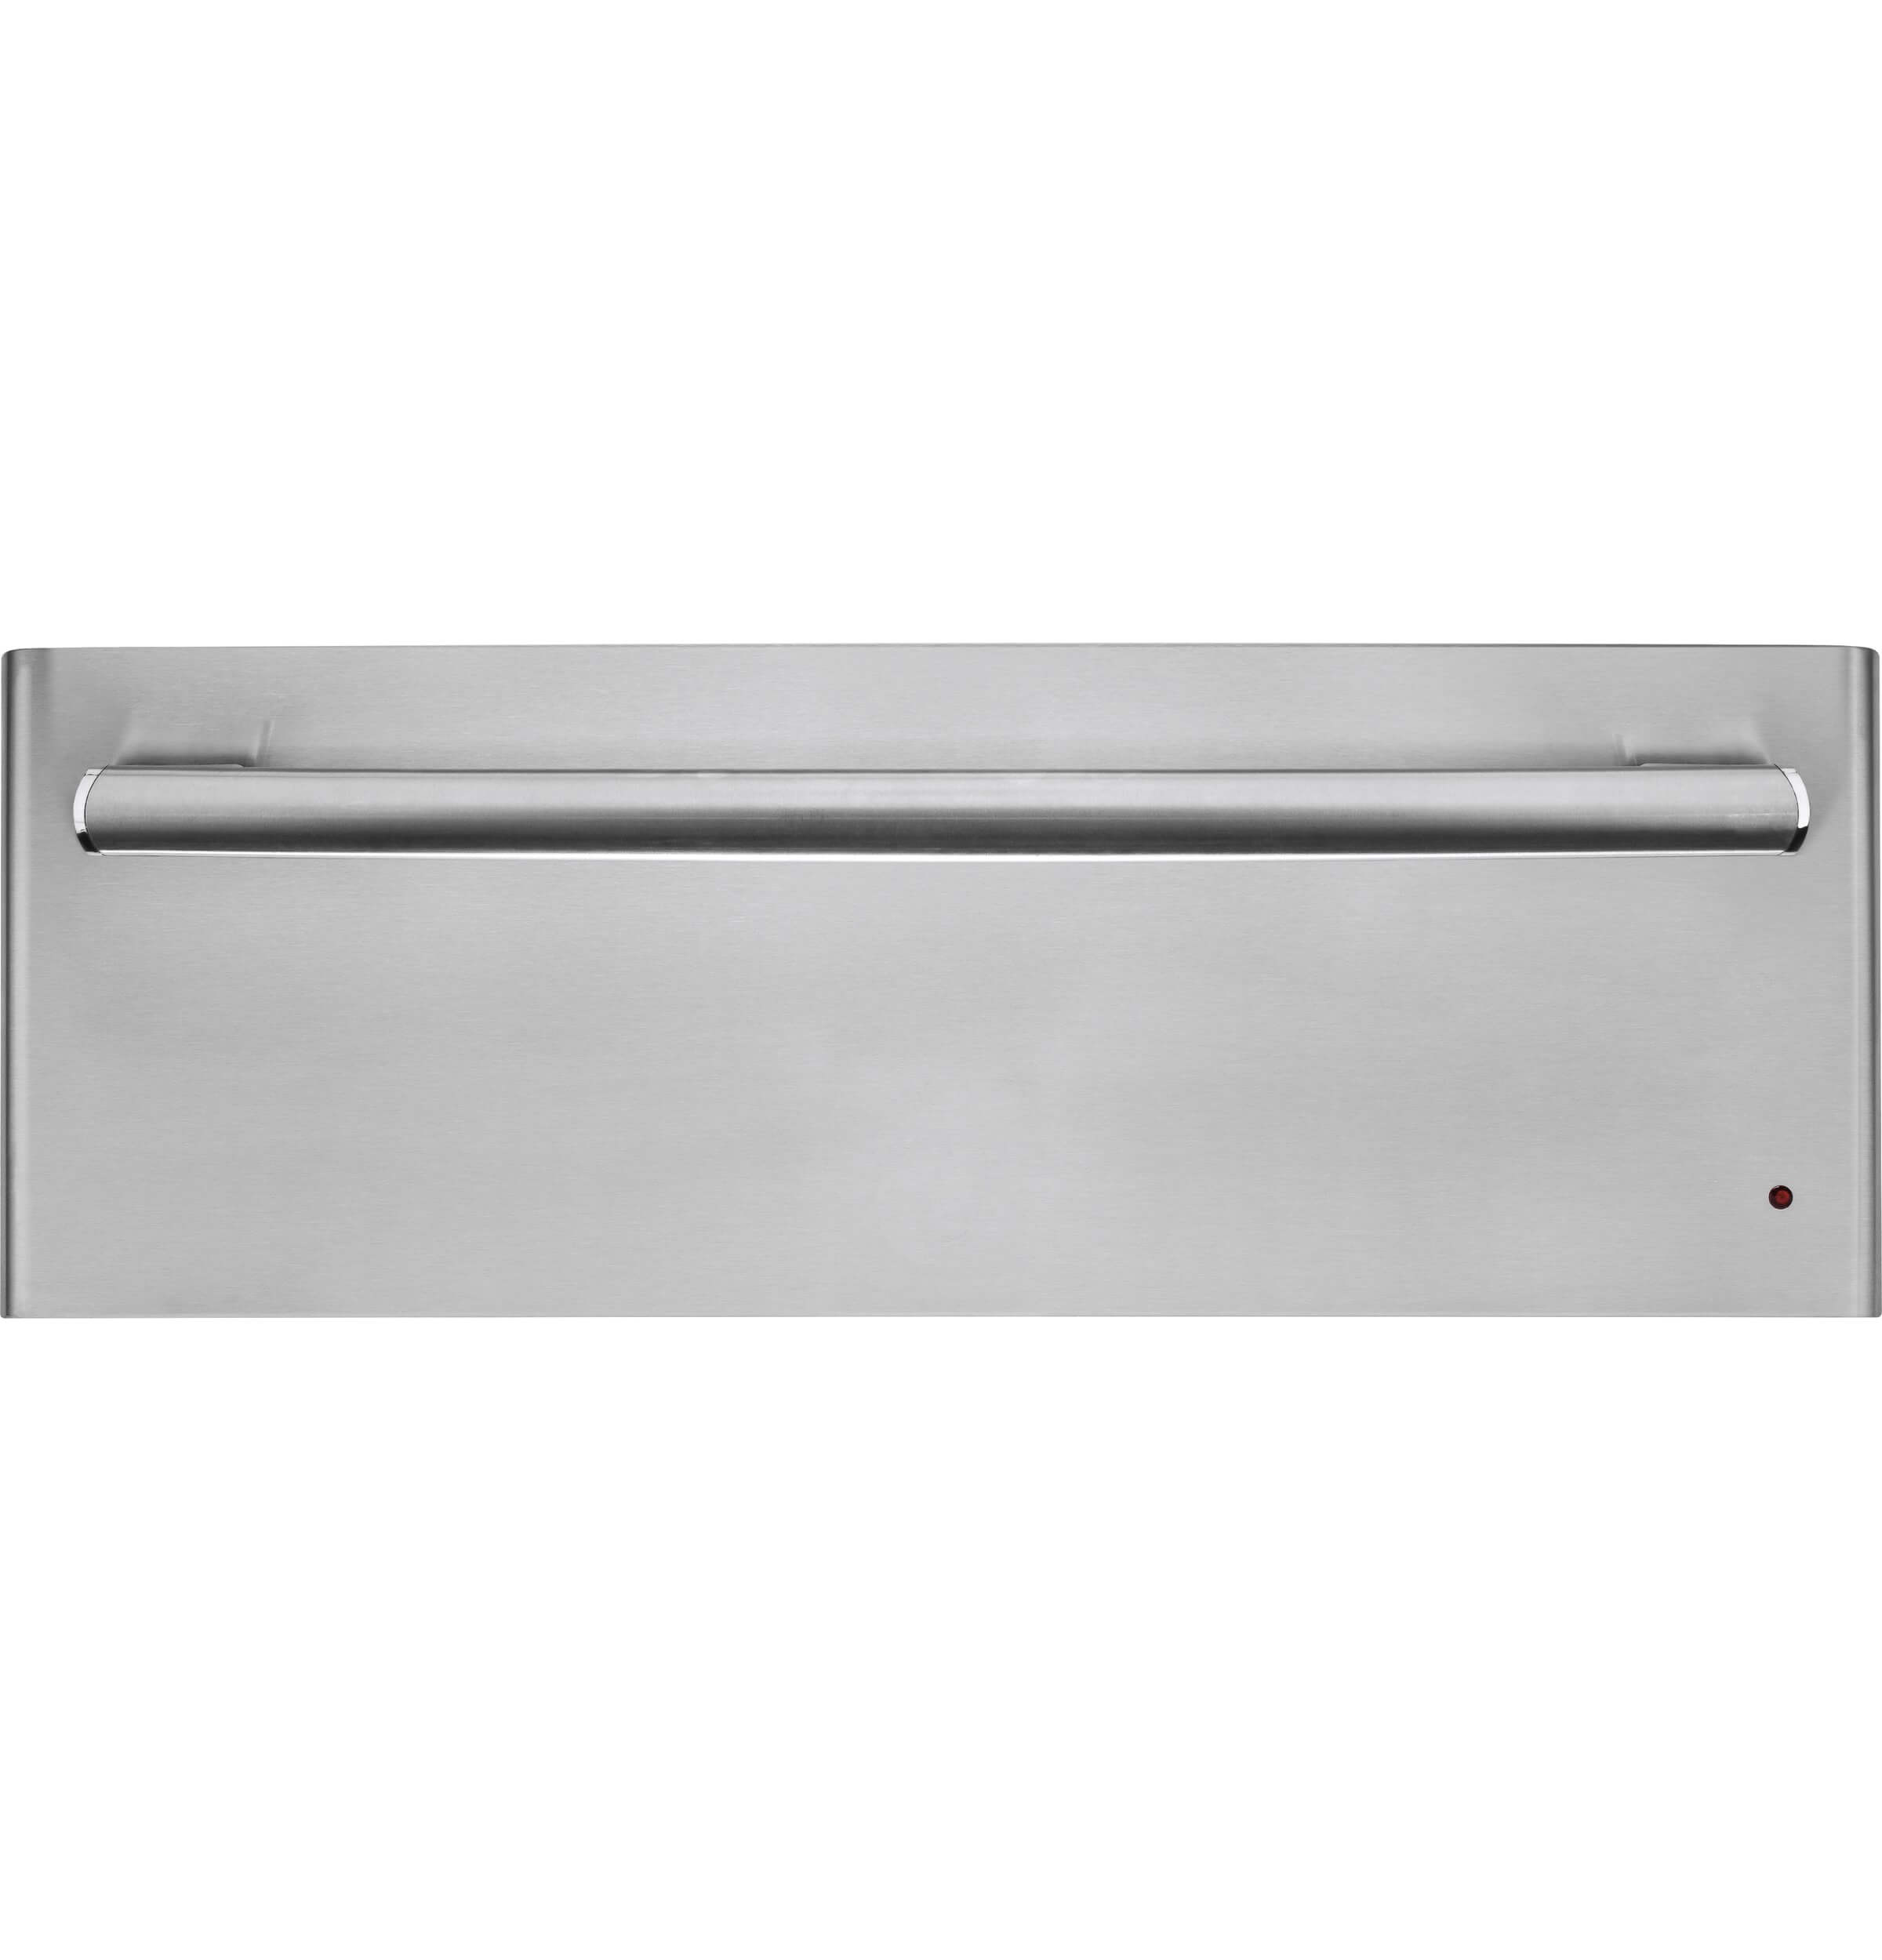 Stainless Steel Profile Series 27 inch Warming Drawer